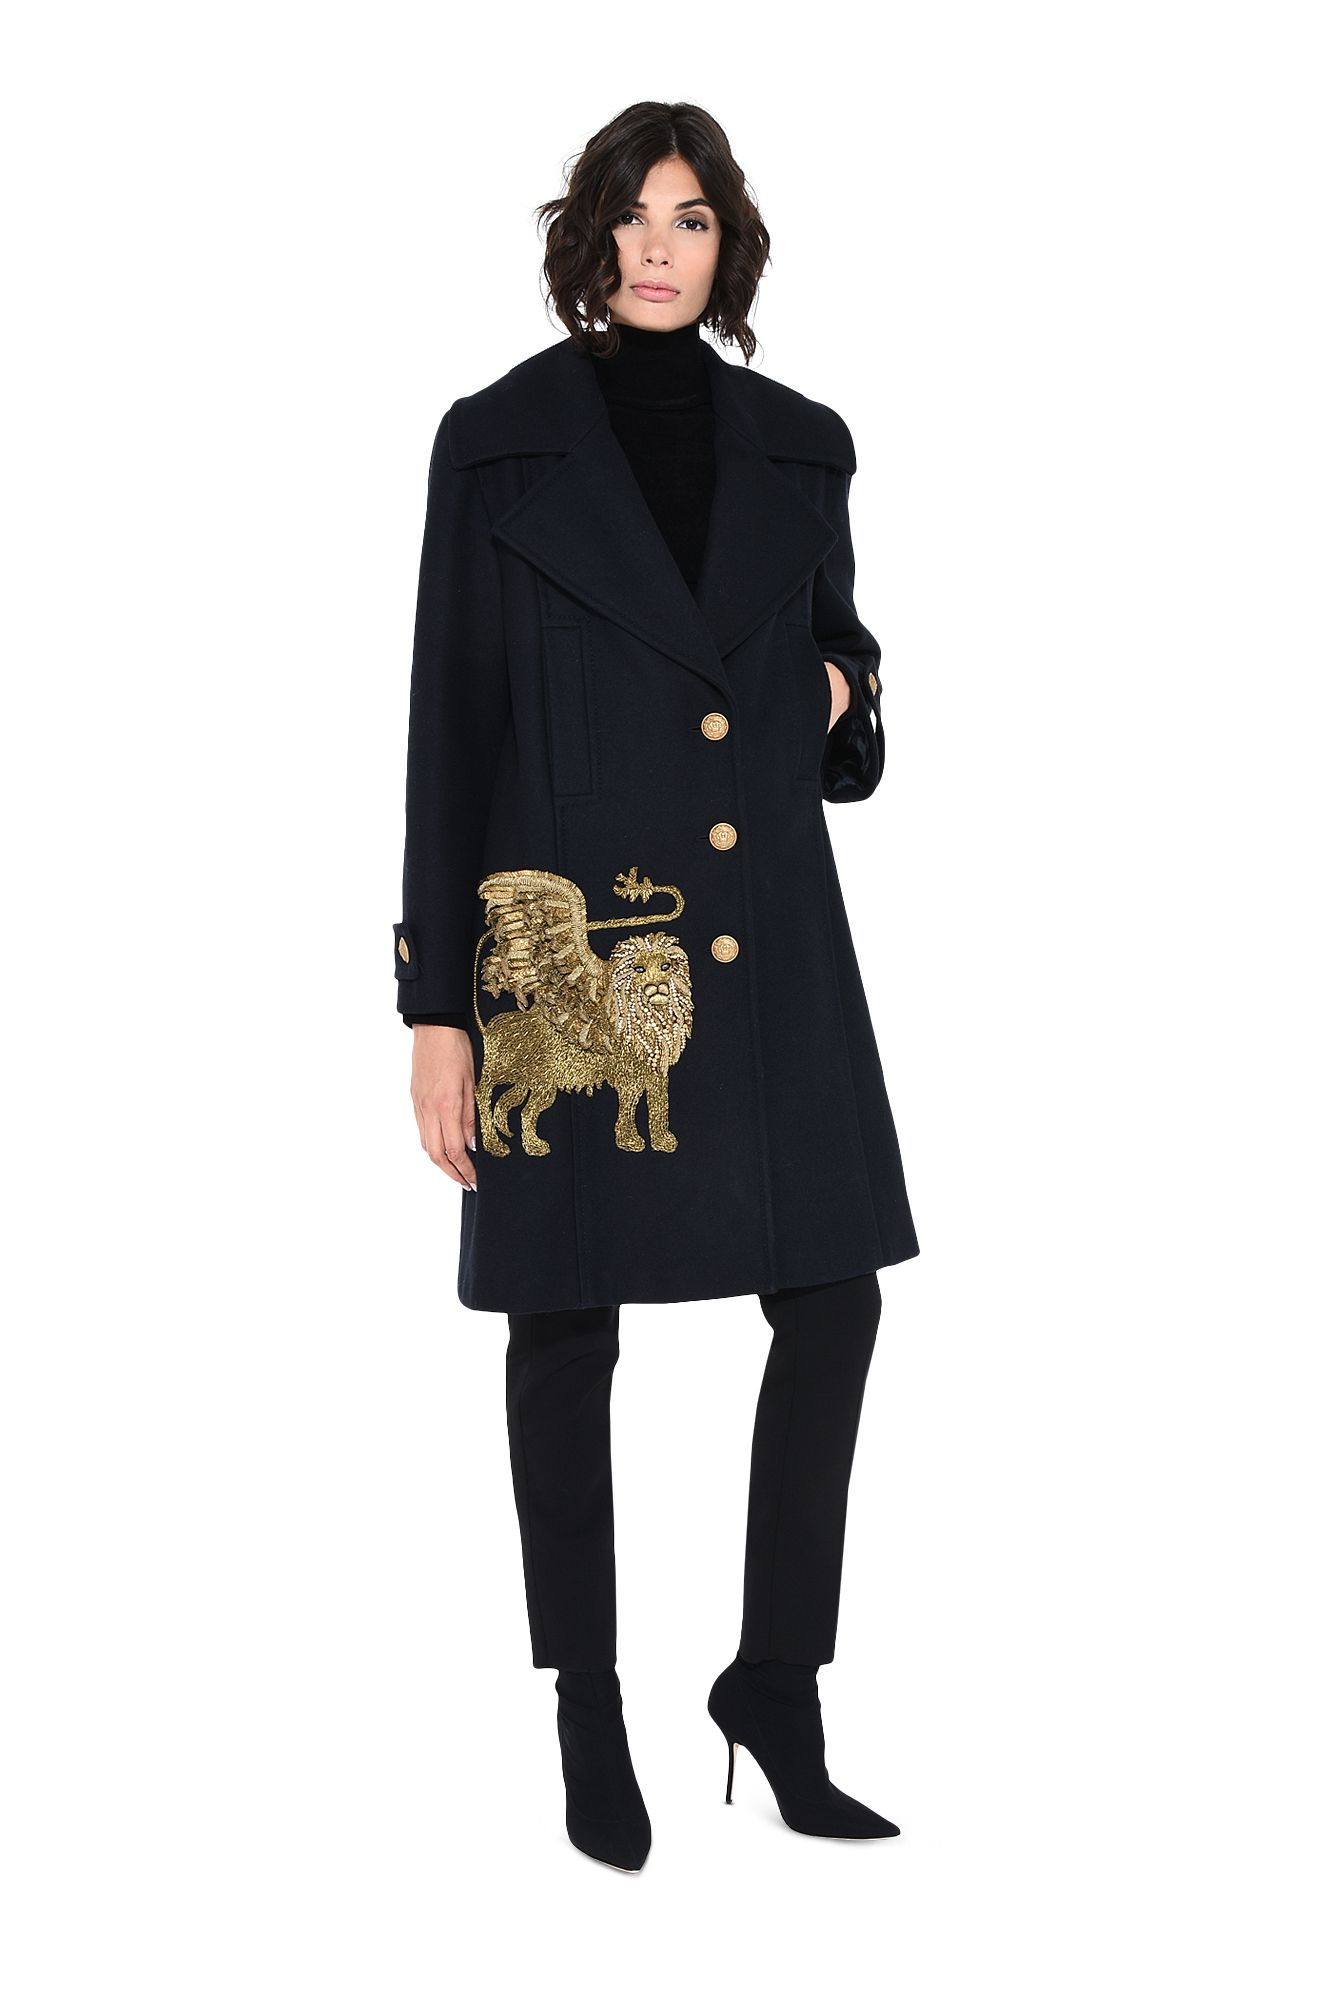 Coat with winged lion